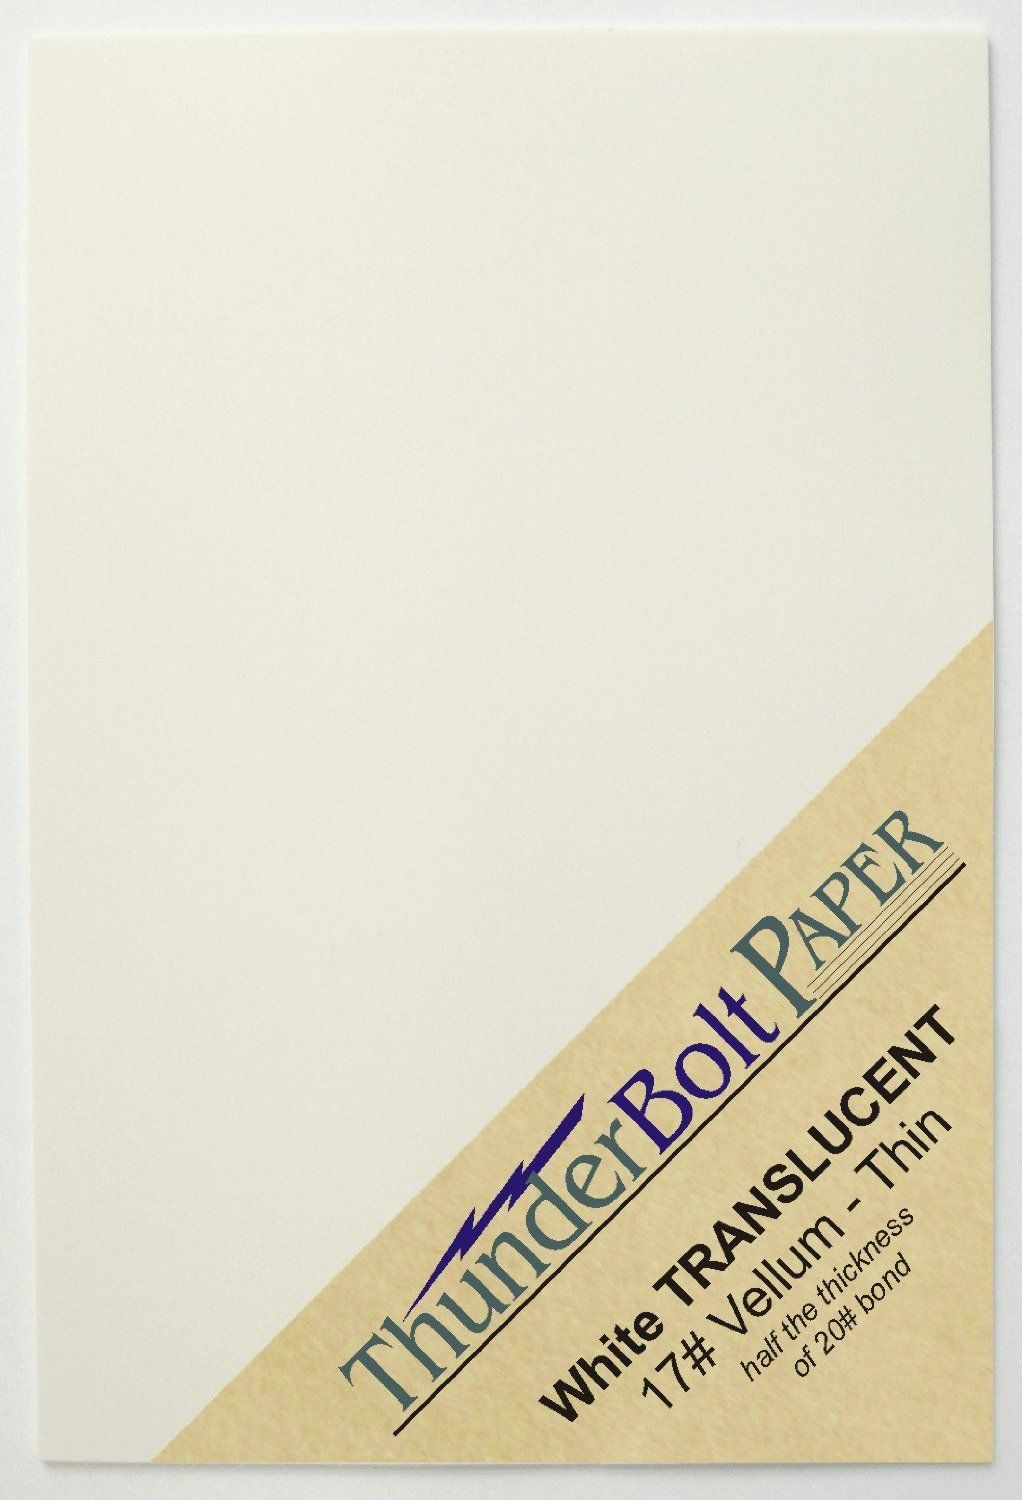 Translucent Paper http://www.amazon.com/Sheets-Translucent-Vellum ...